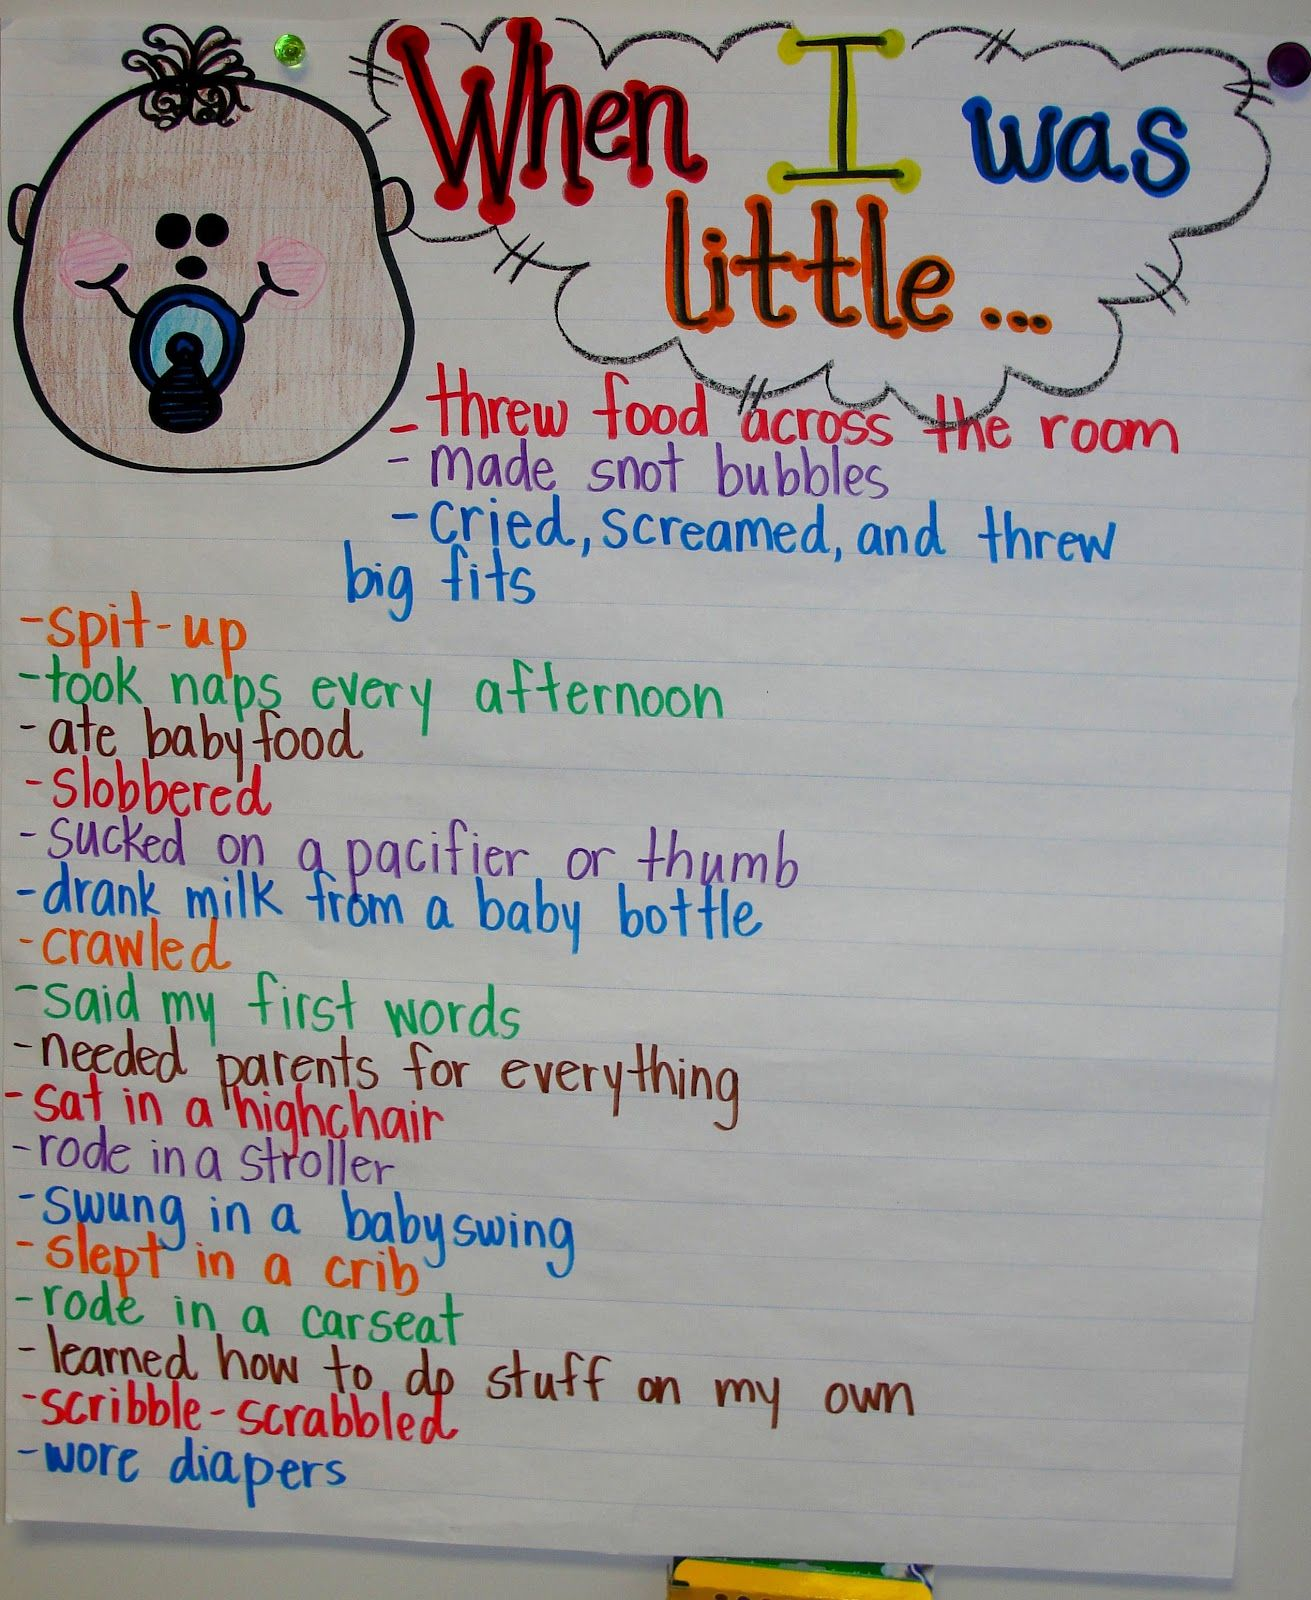 Past Tense Verbs Wheni Was Little Chart To Go With